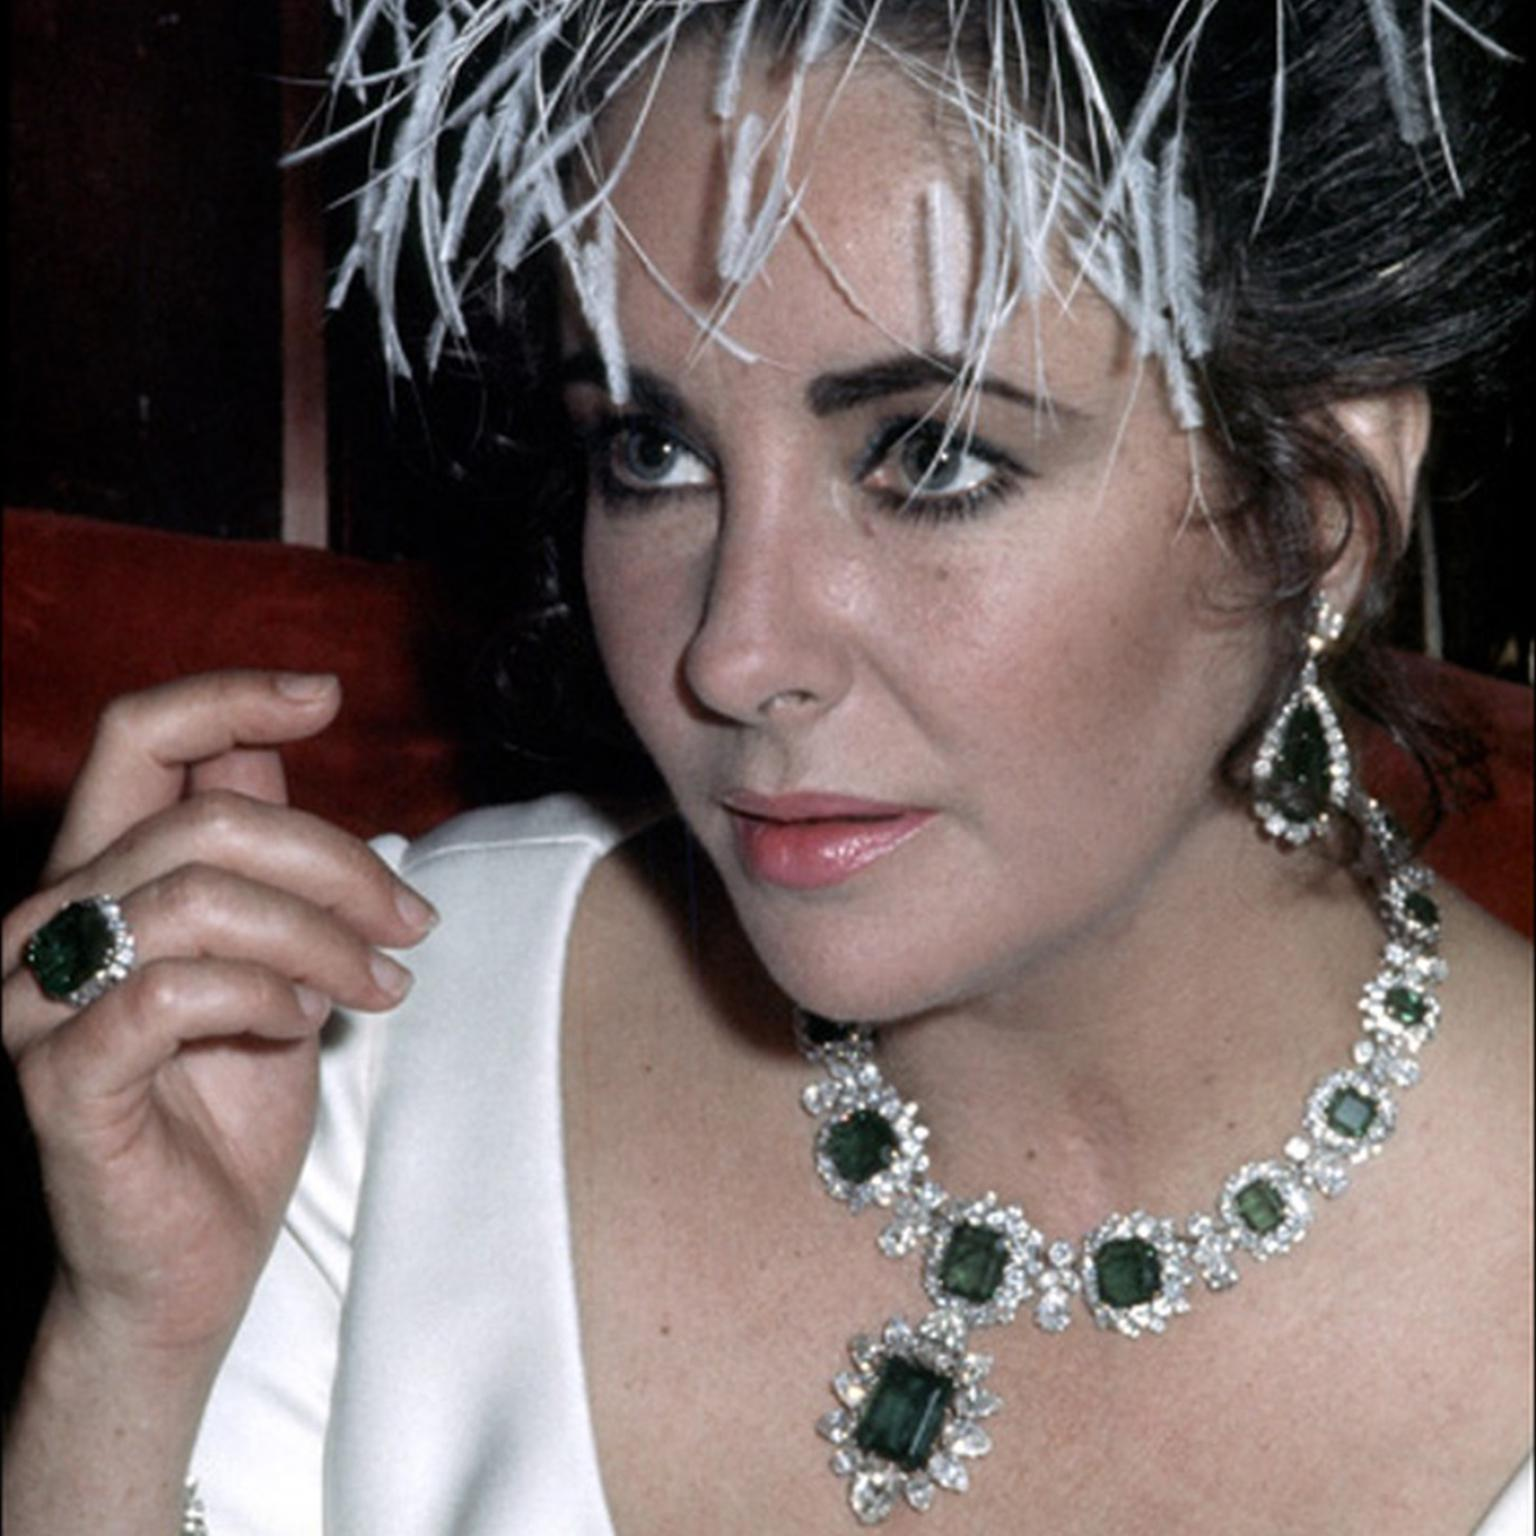 Bulgari exhibition of Elizabeth Taylor's jewellery